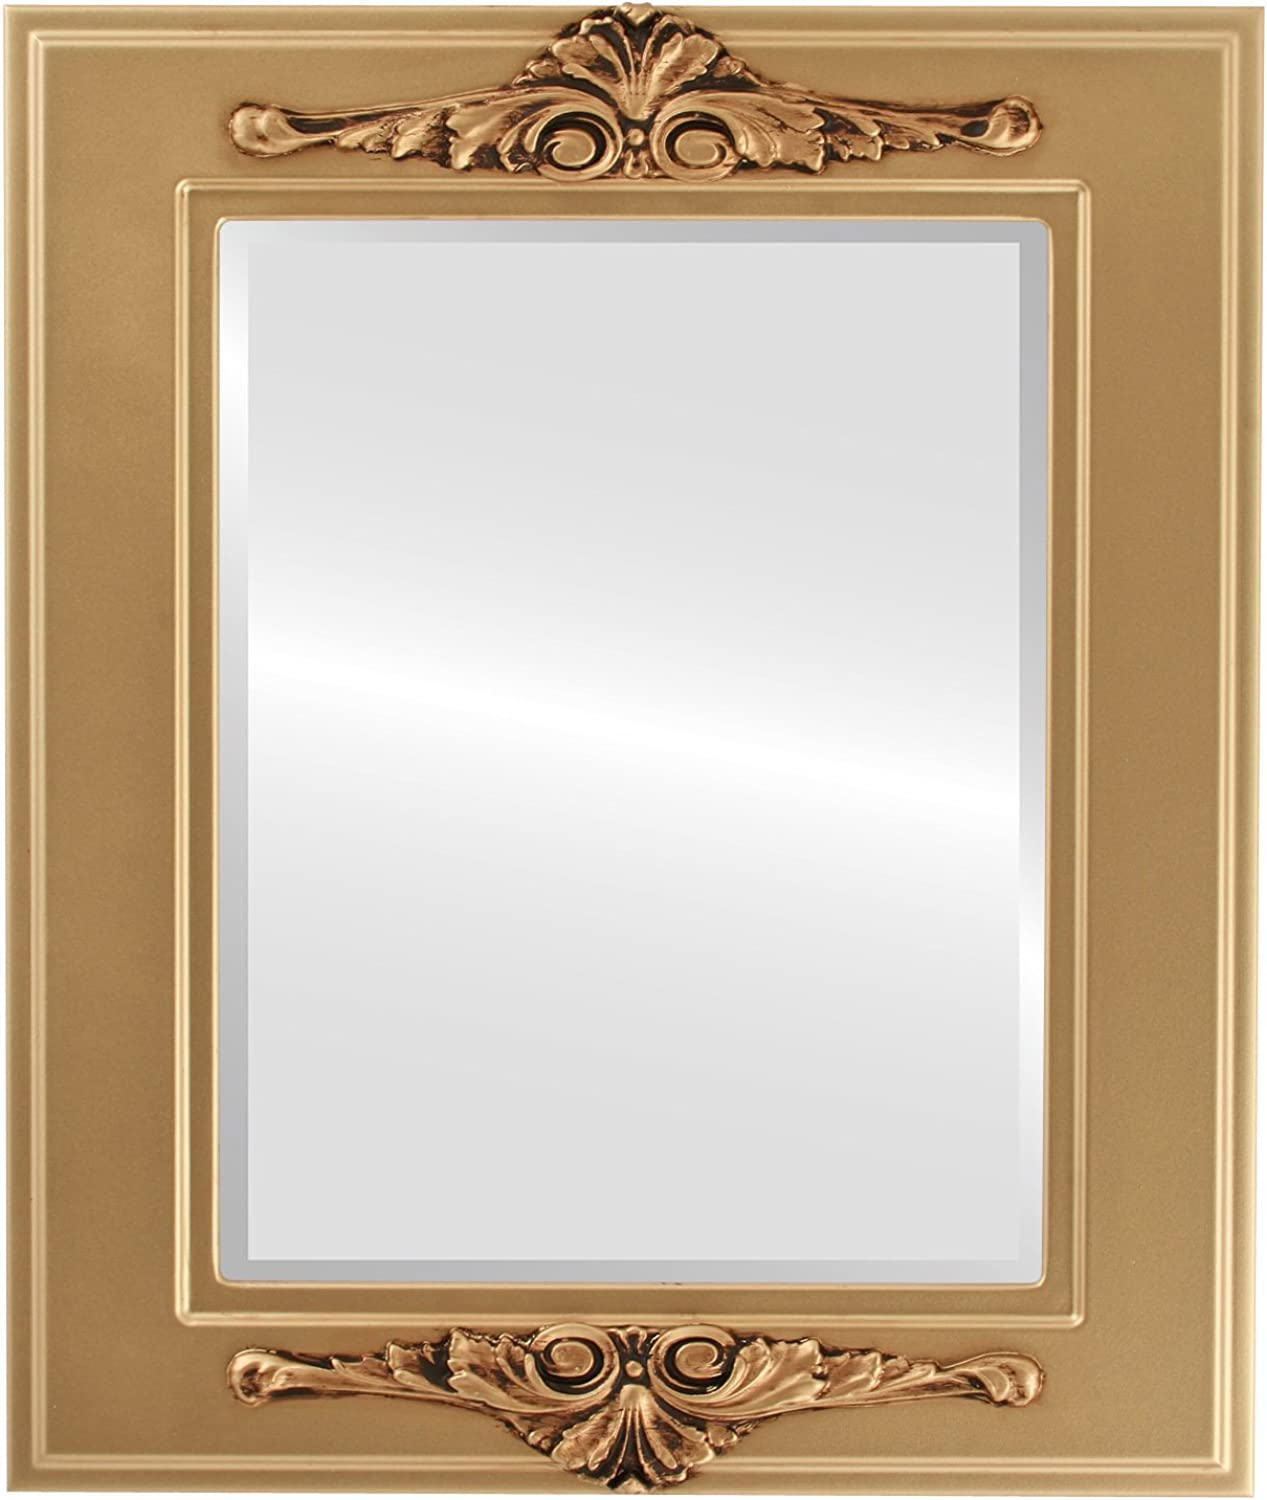 OvalAndRoundMirrors  Rectangle Beveled Mirror in a Ramino style Desert gold frame with 17x21 outside dimensions